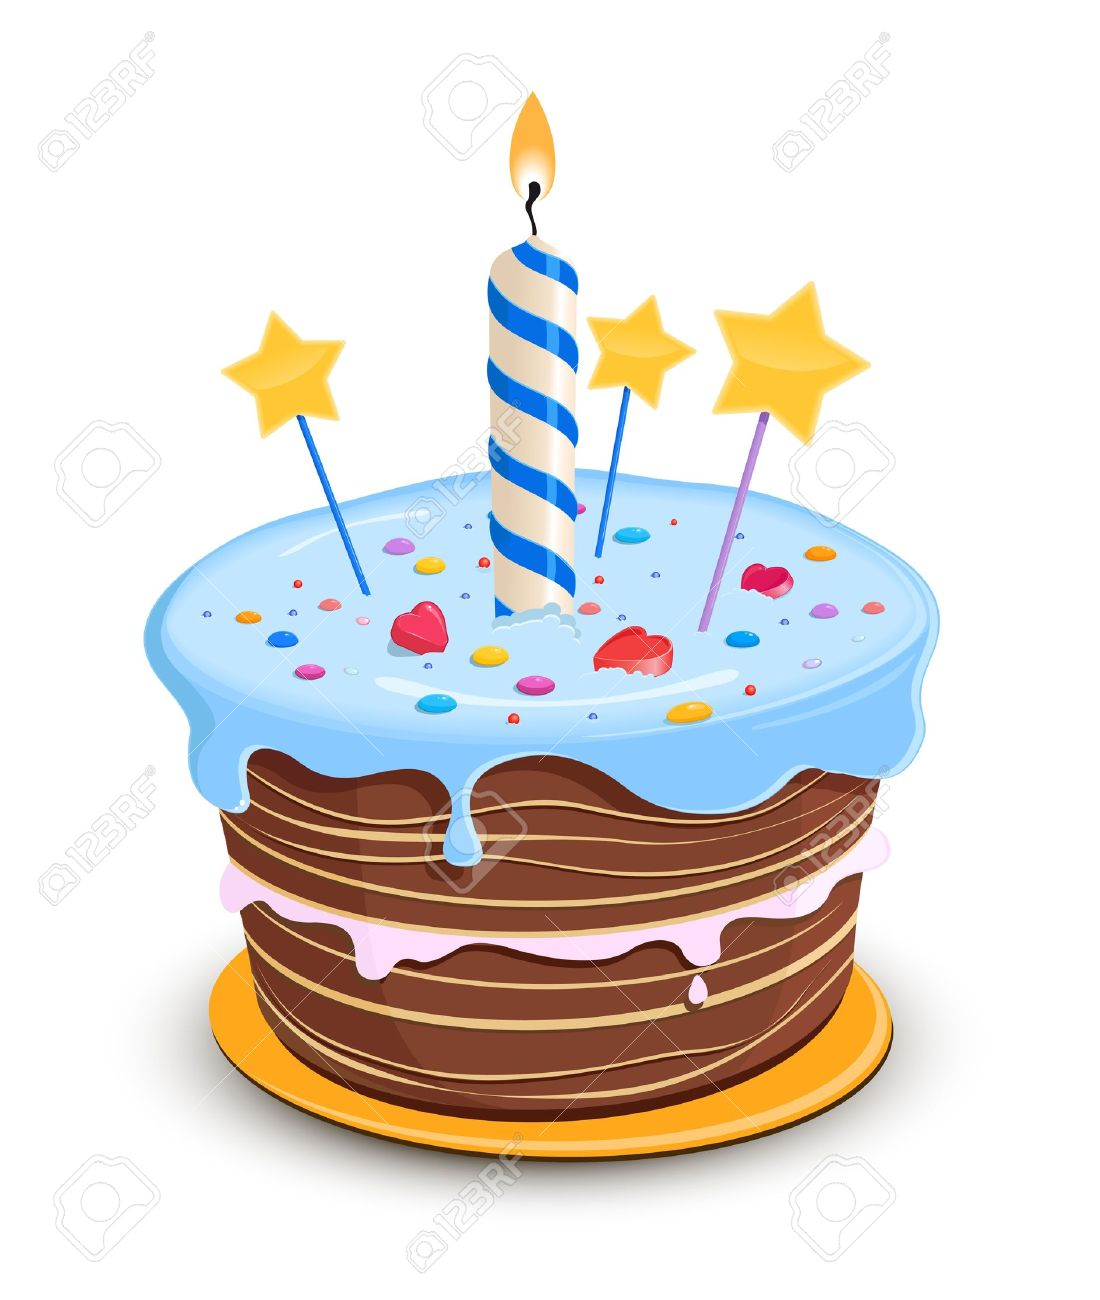 Birthday Cake Royalty Free Cliparts Vectors And Stock - Cartoon birthday cake images